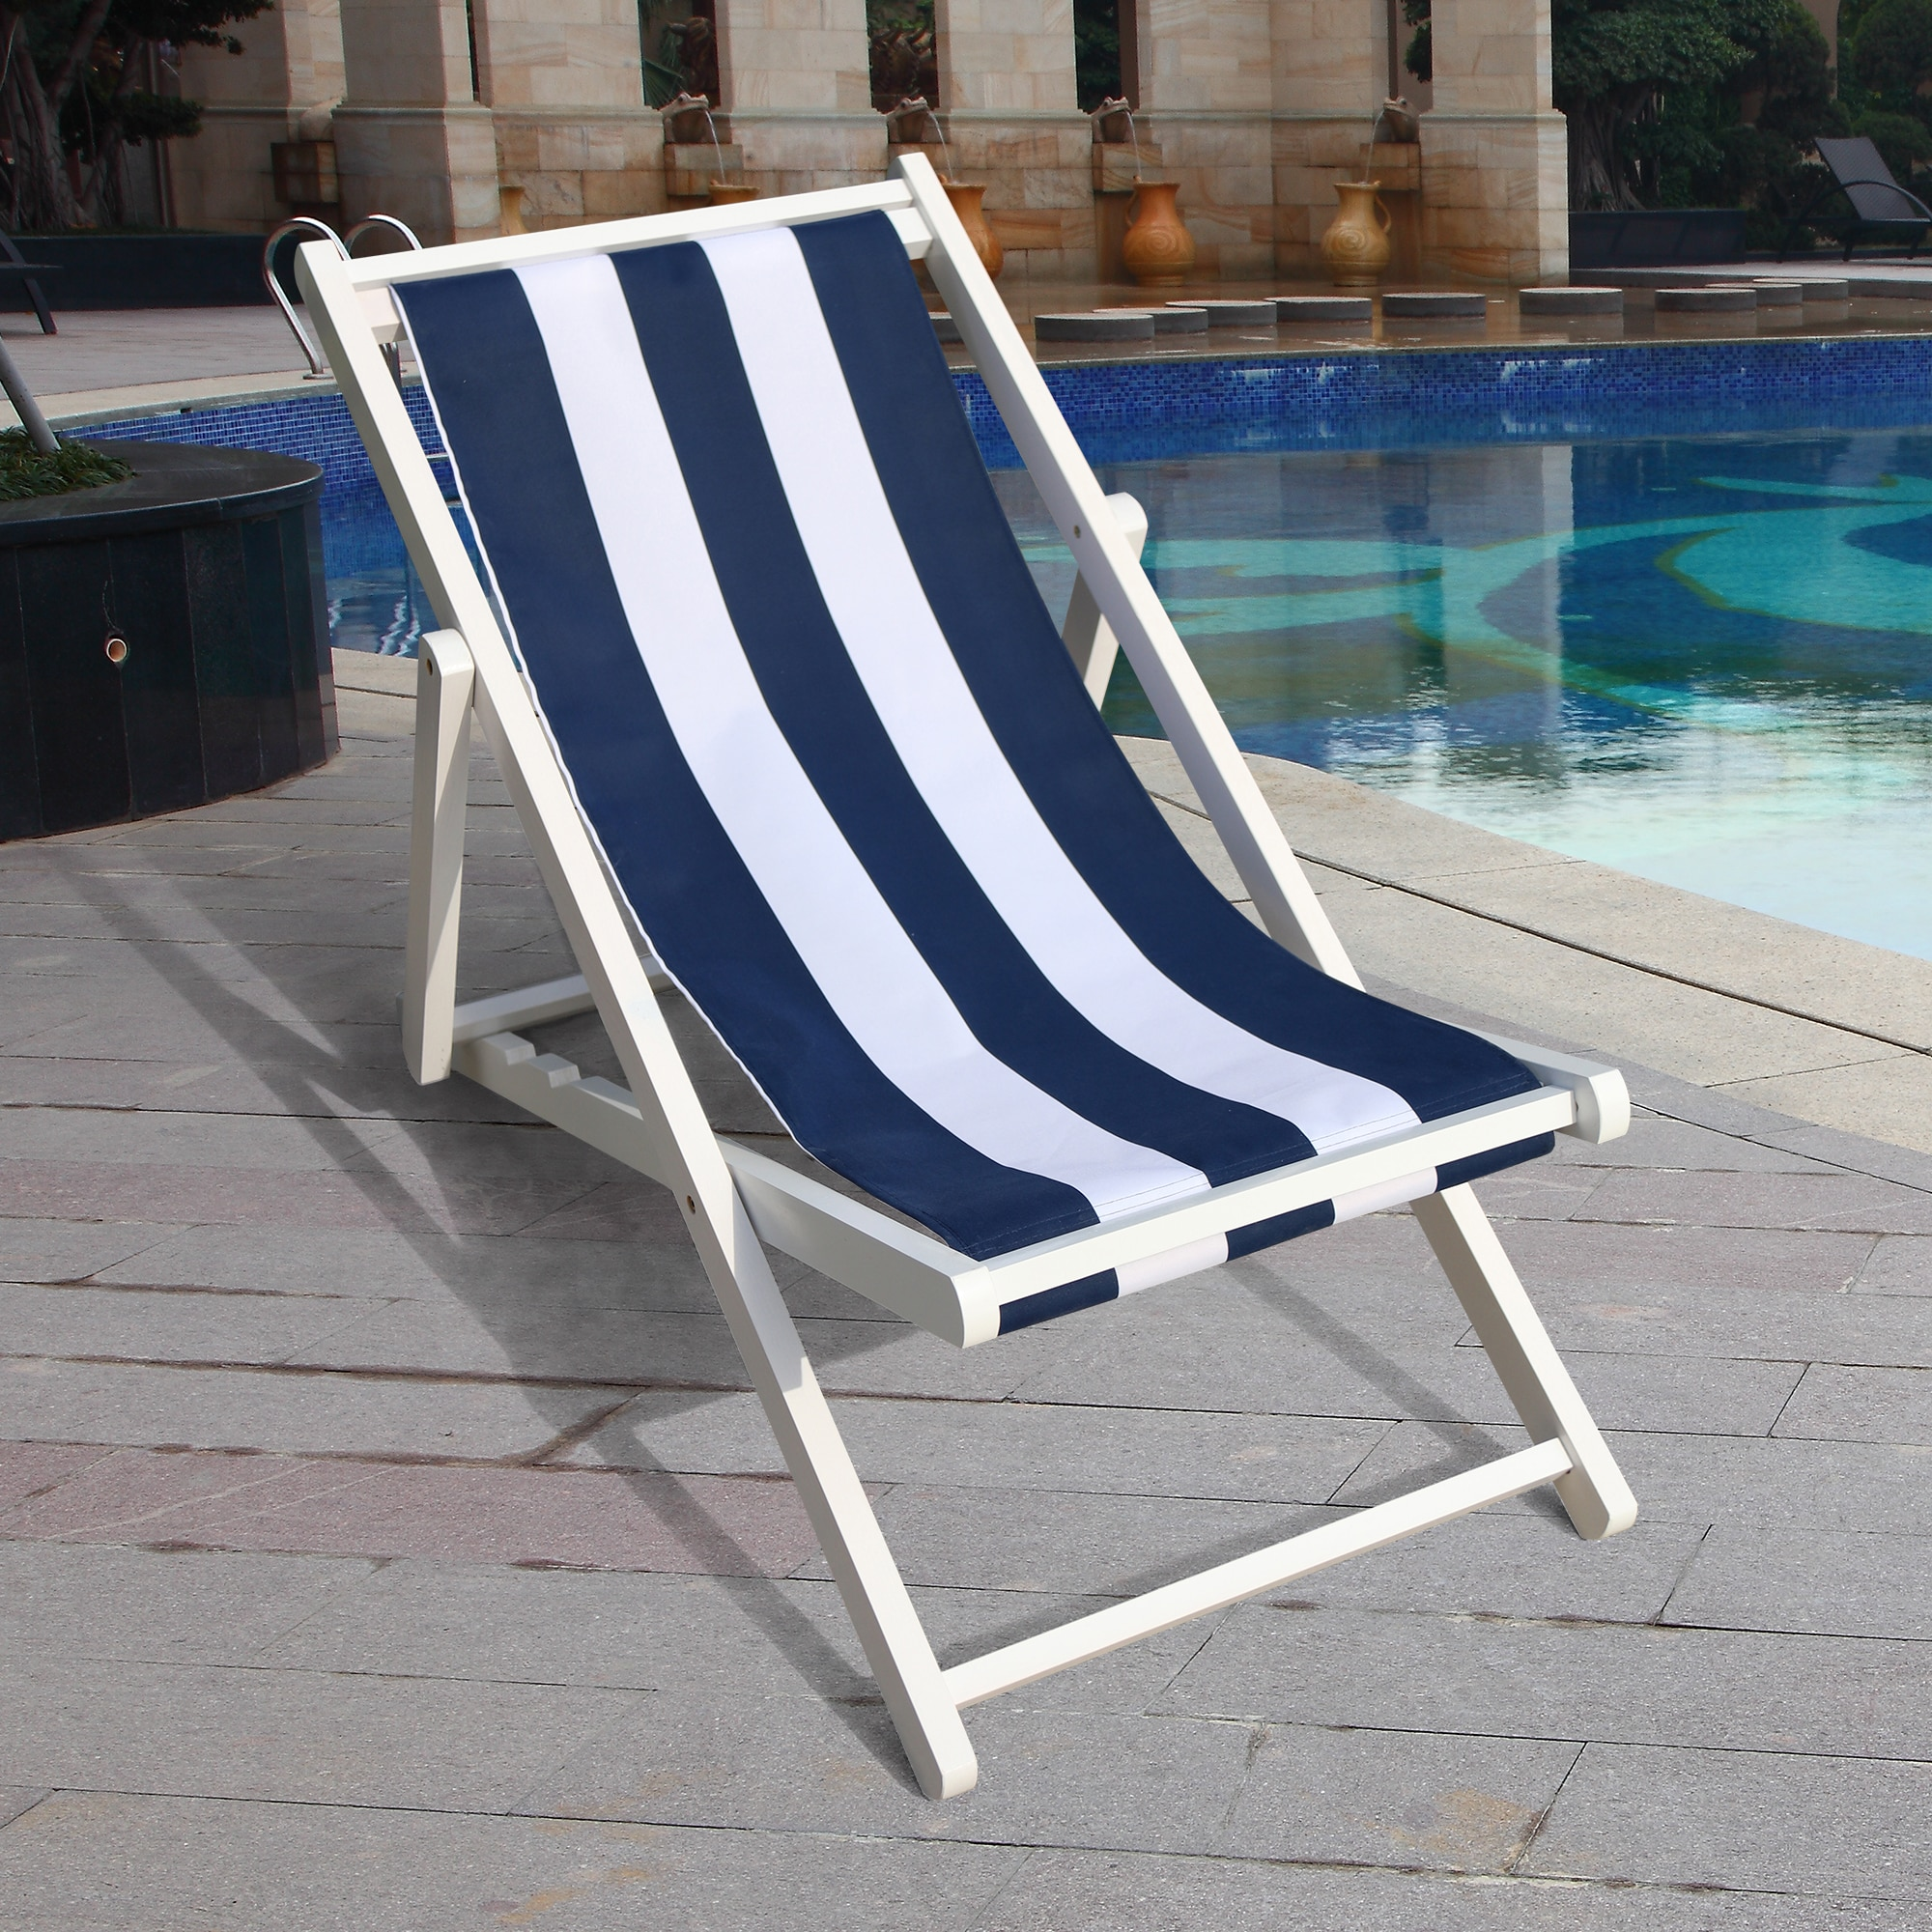 blue bar chairs furniture shop ktv music art museum teaching stools free shipping furniture retail wholesale household chair Populus Wood Sling Chair Blue Stripe Lounge Chair Chaise Desk Chair Outdoor Furniture Garden Poolside Chairs